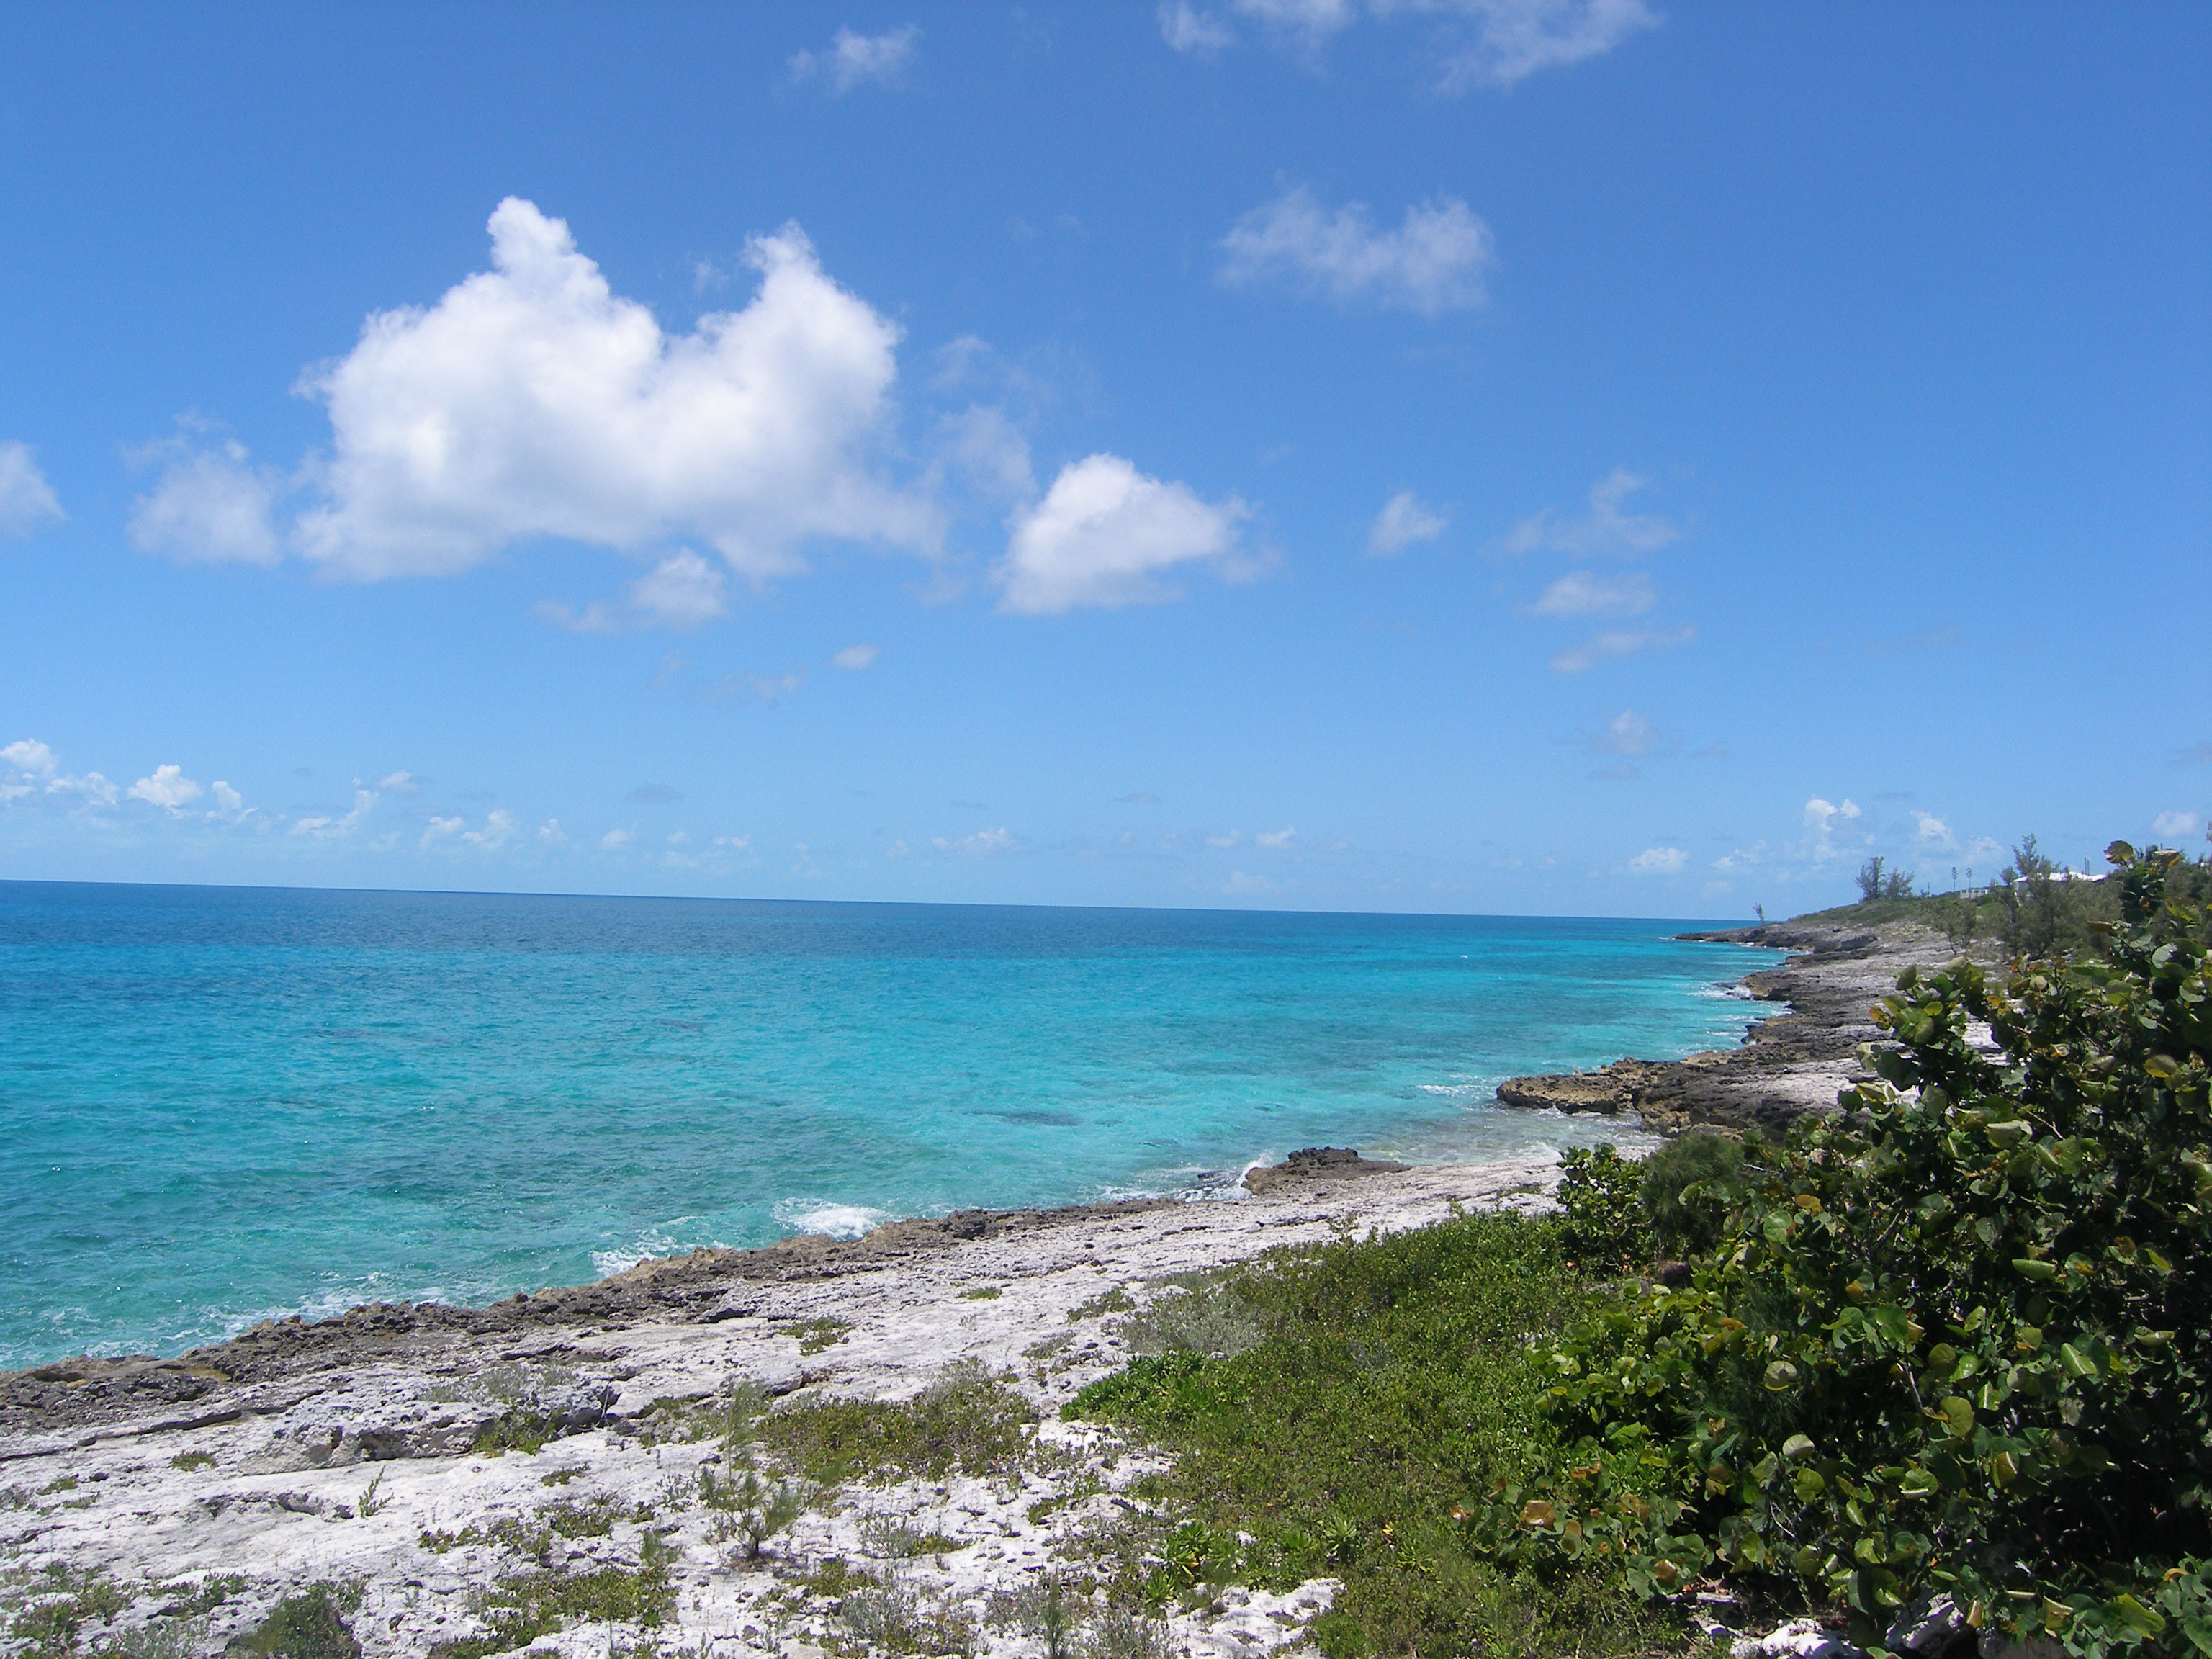 Land for Sale at Rainbow Bay Lot #45, Eleuthera Rainbow Bay, Eleuthera Bahamas